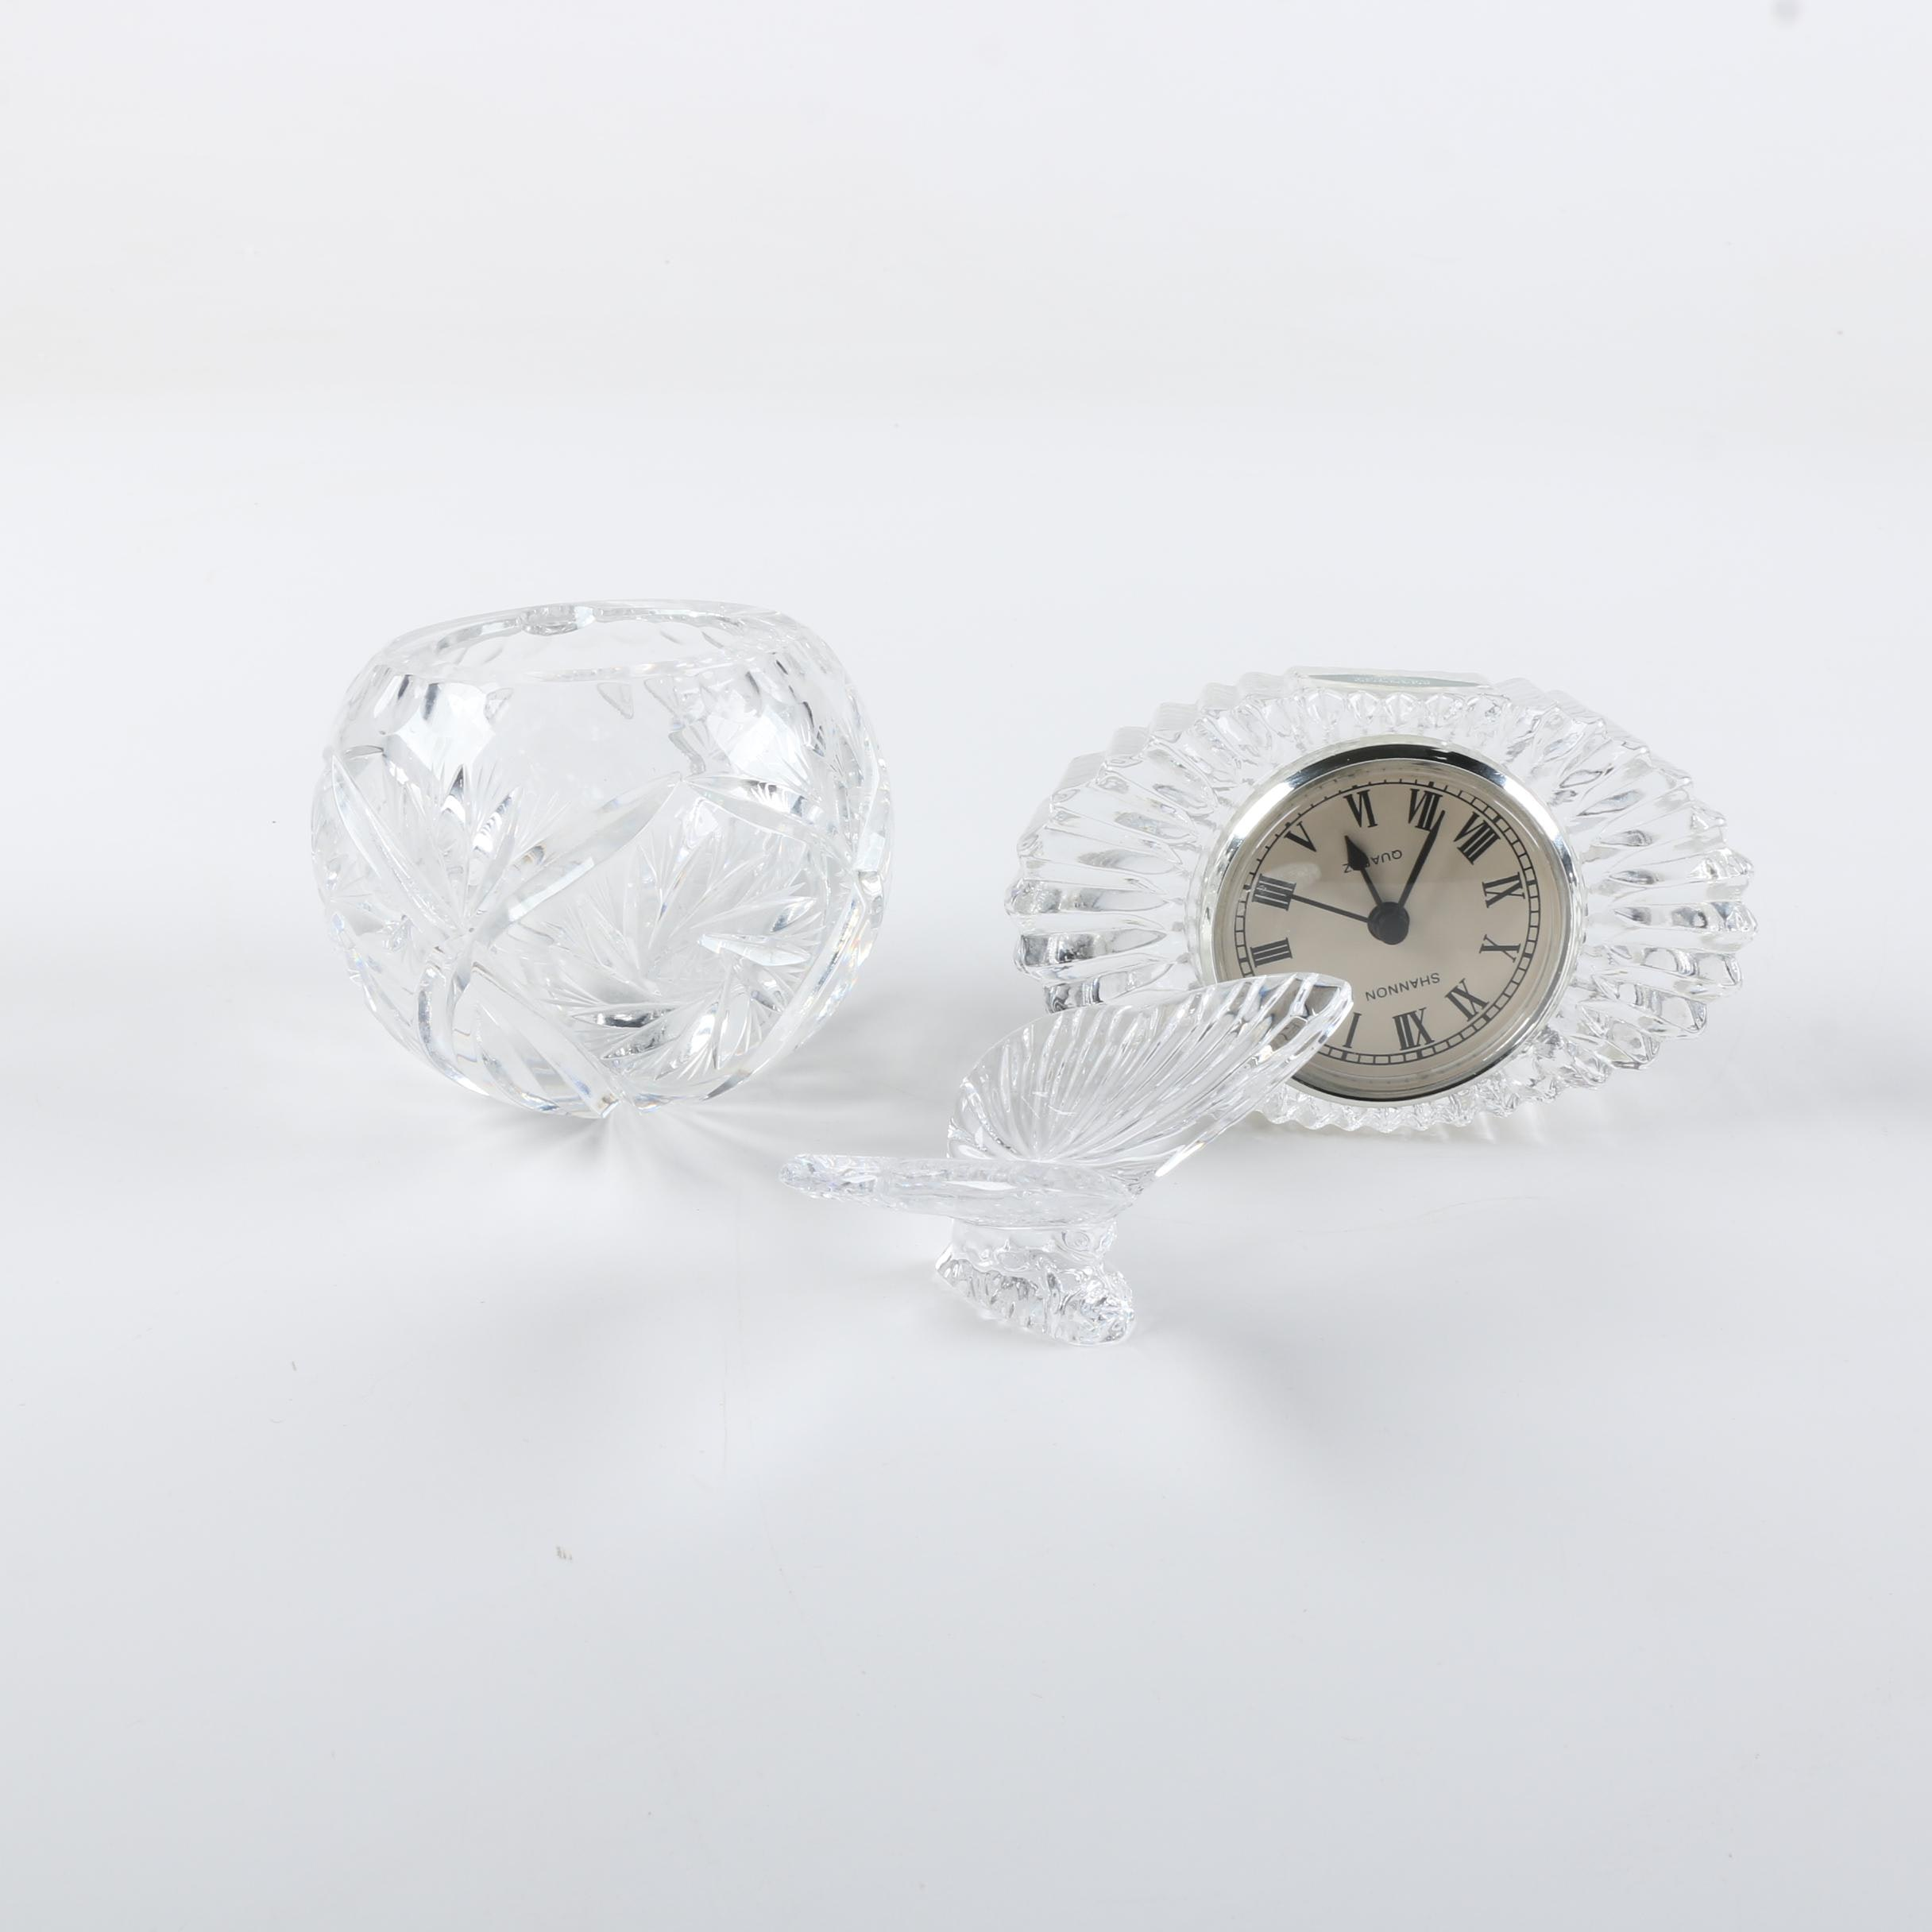 Crystal Decor Featuring Shannon Clock